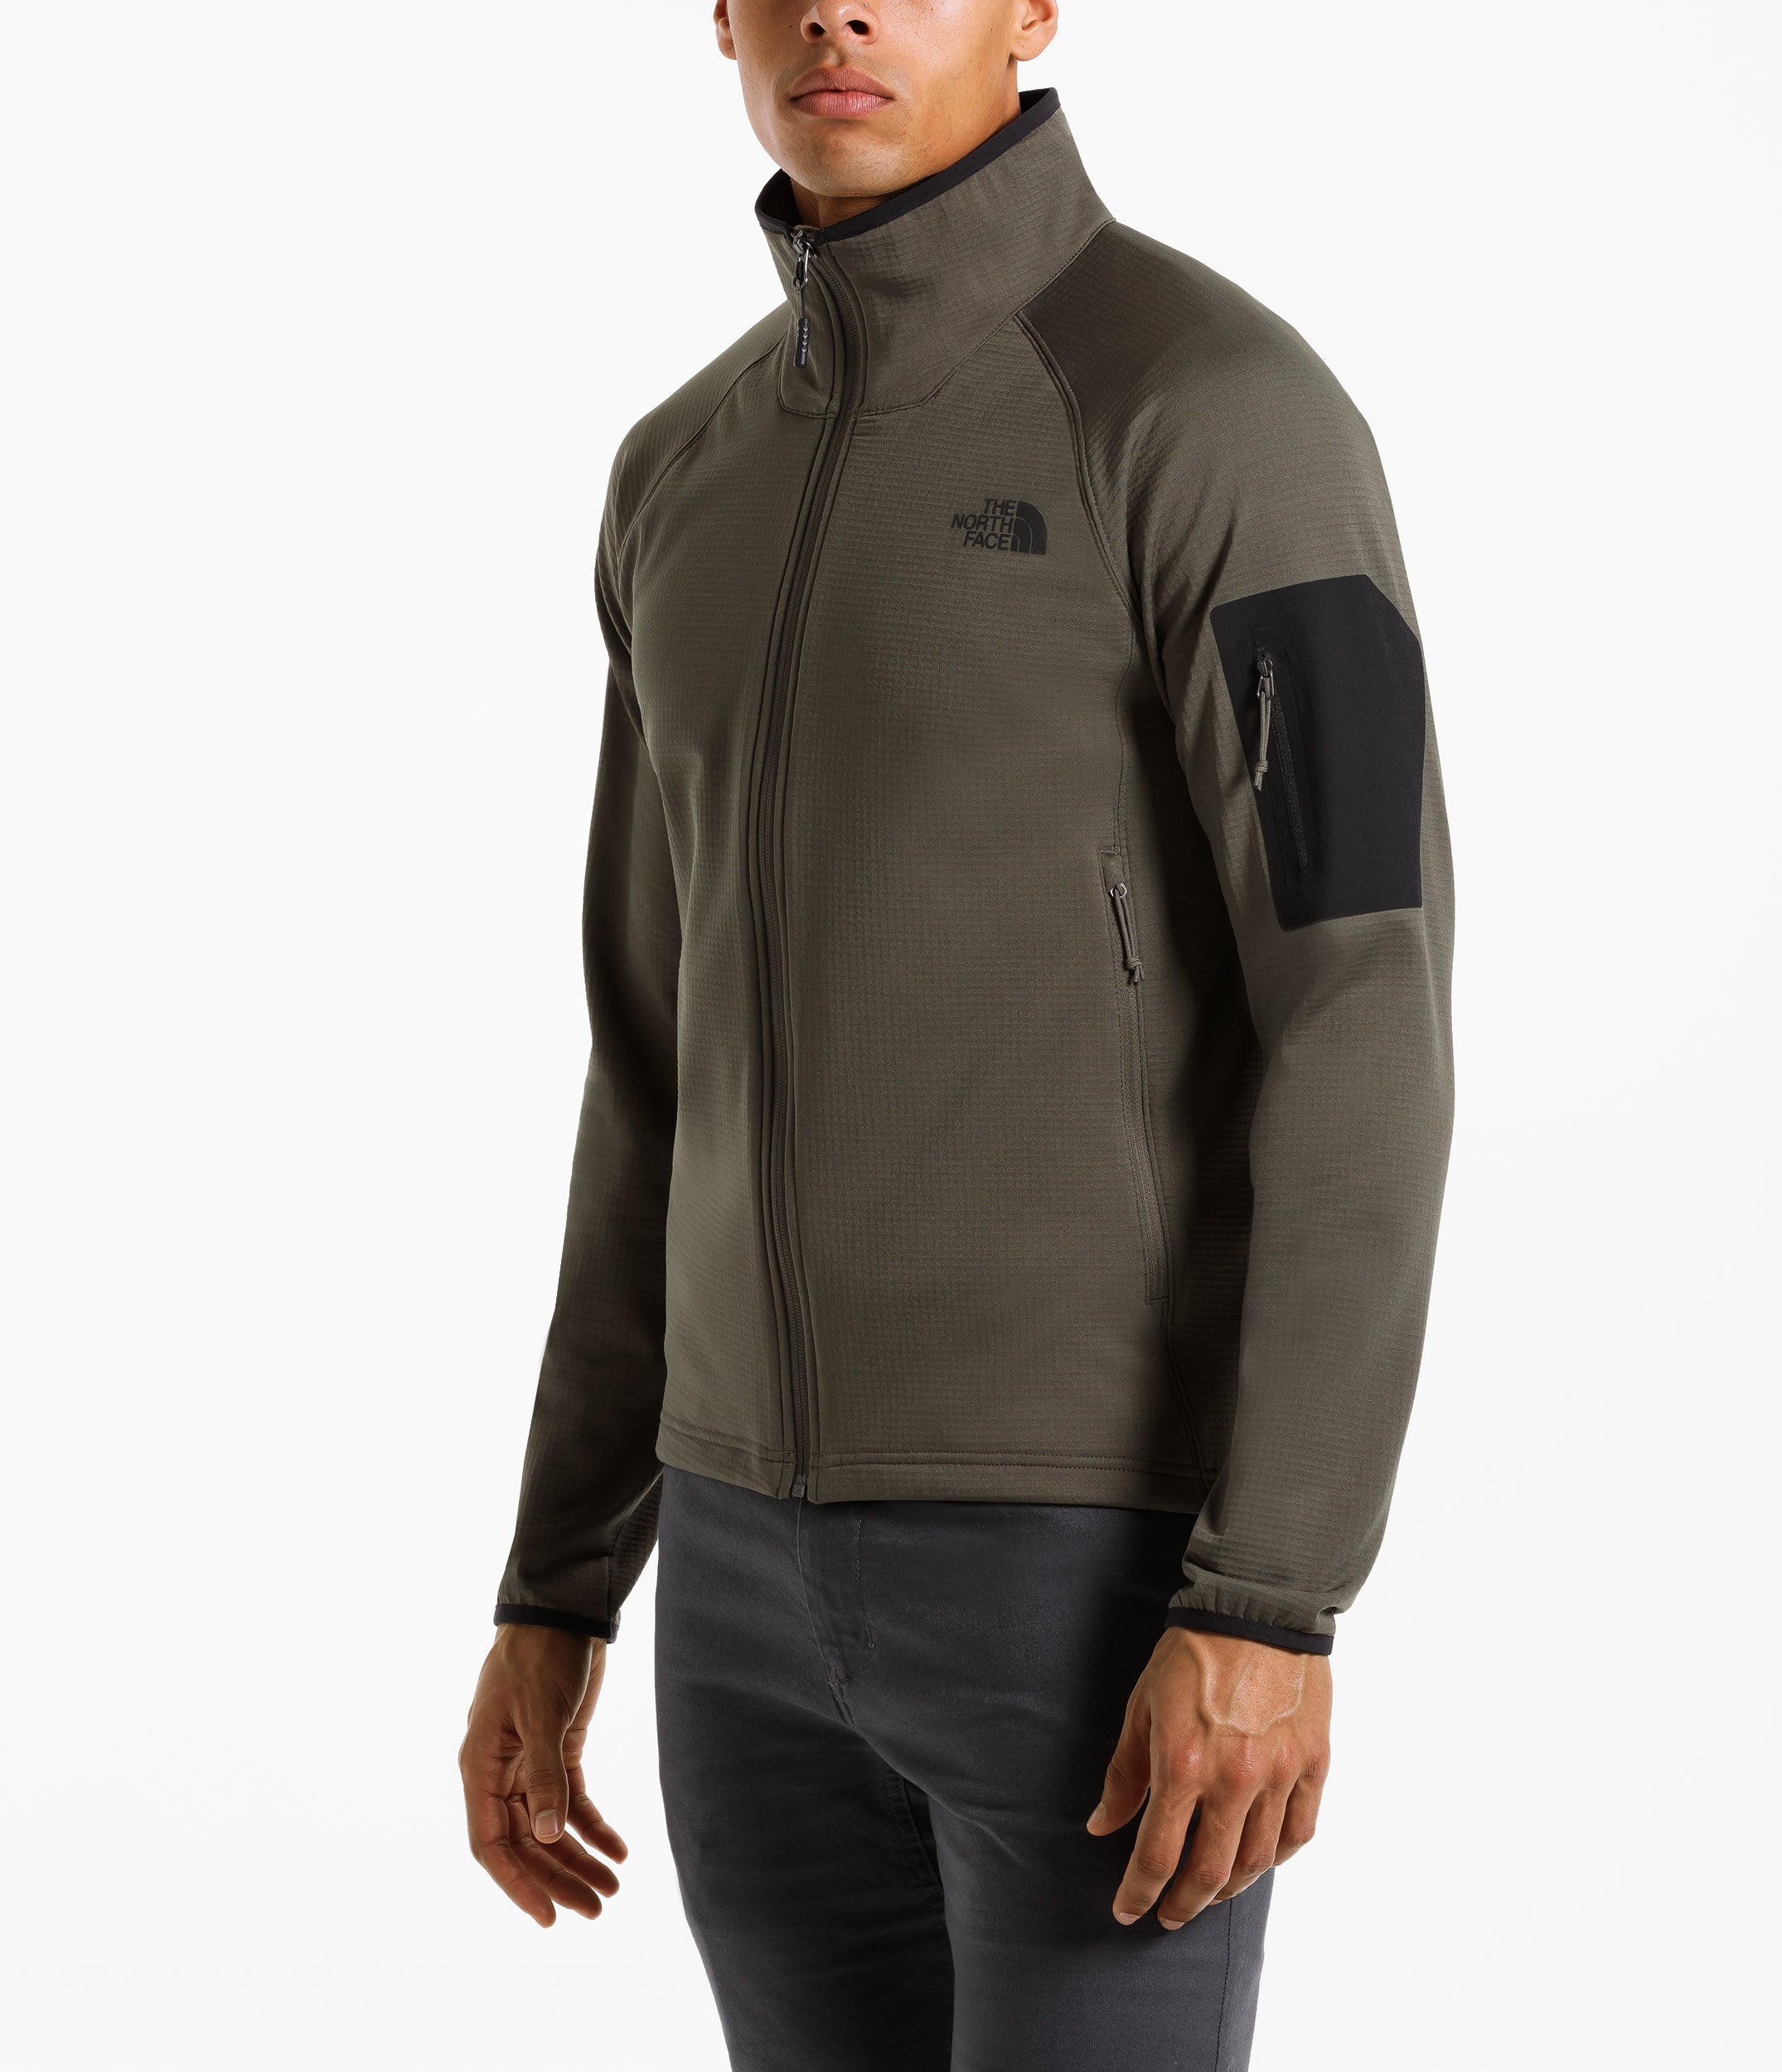 a02a86c00 The North Face Borod Full Zip Jacket New Taupe Green | Chicago City ...